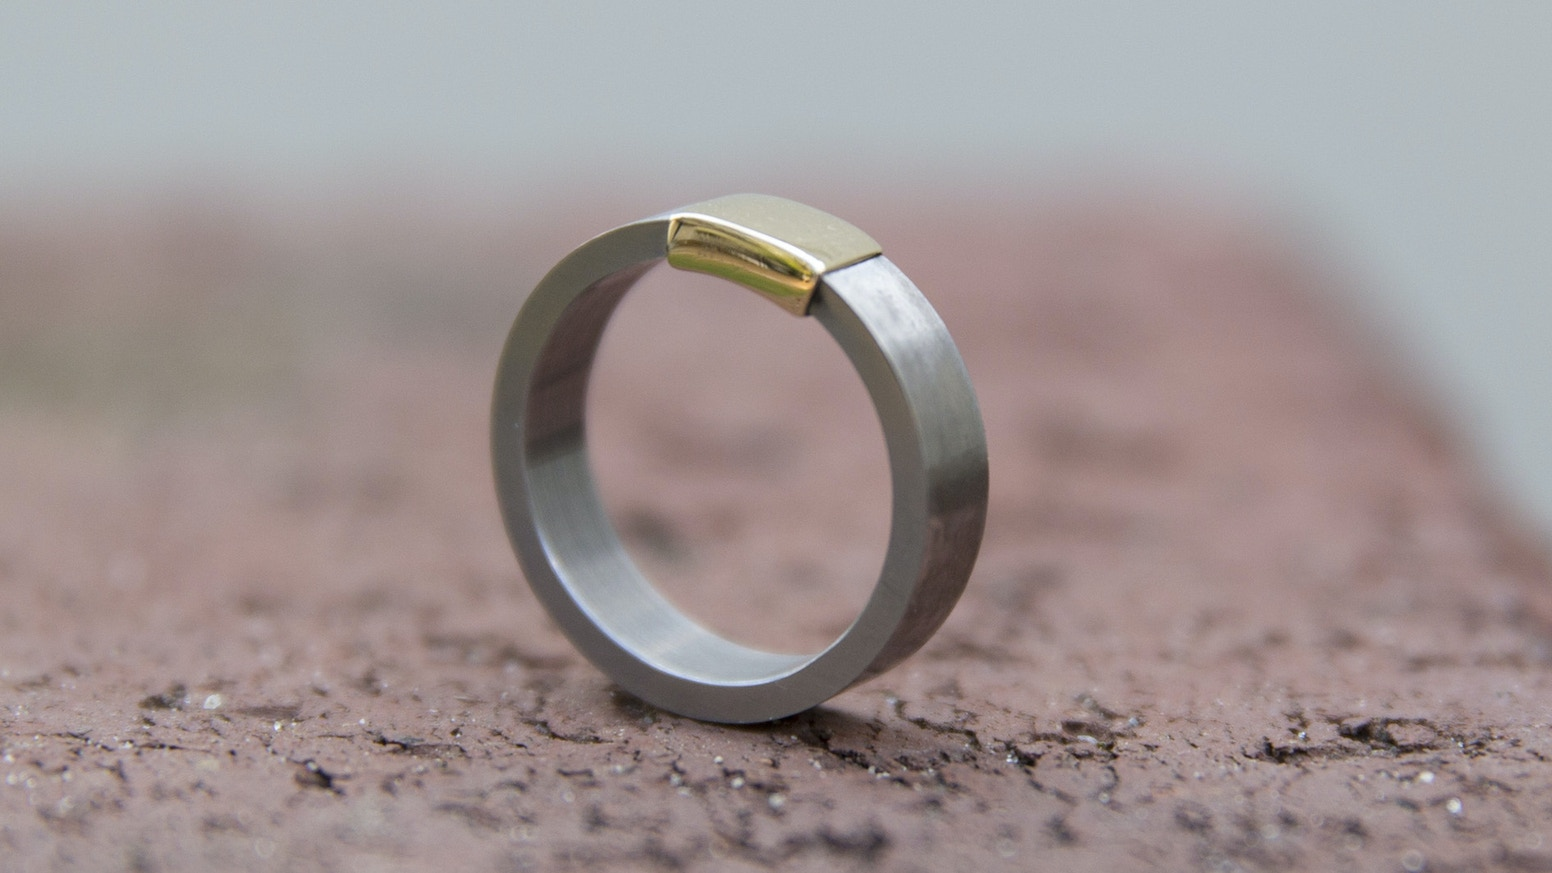 Made From The Shotgun Inspired By Outdoors Barrel Band Is First Ring Cut Directly